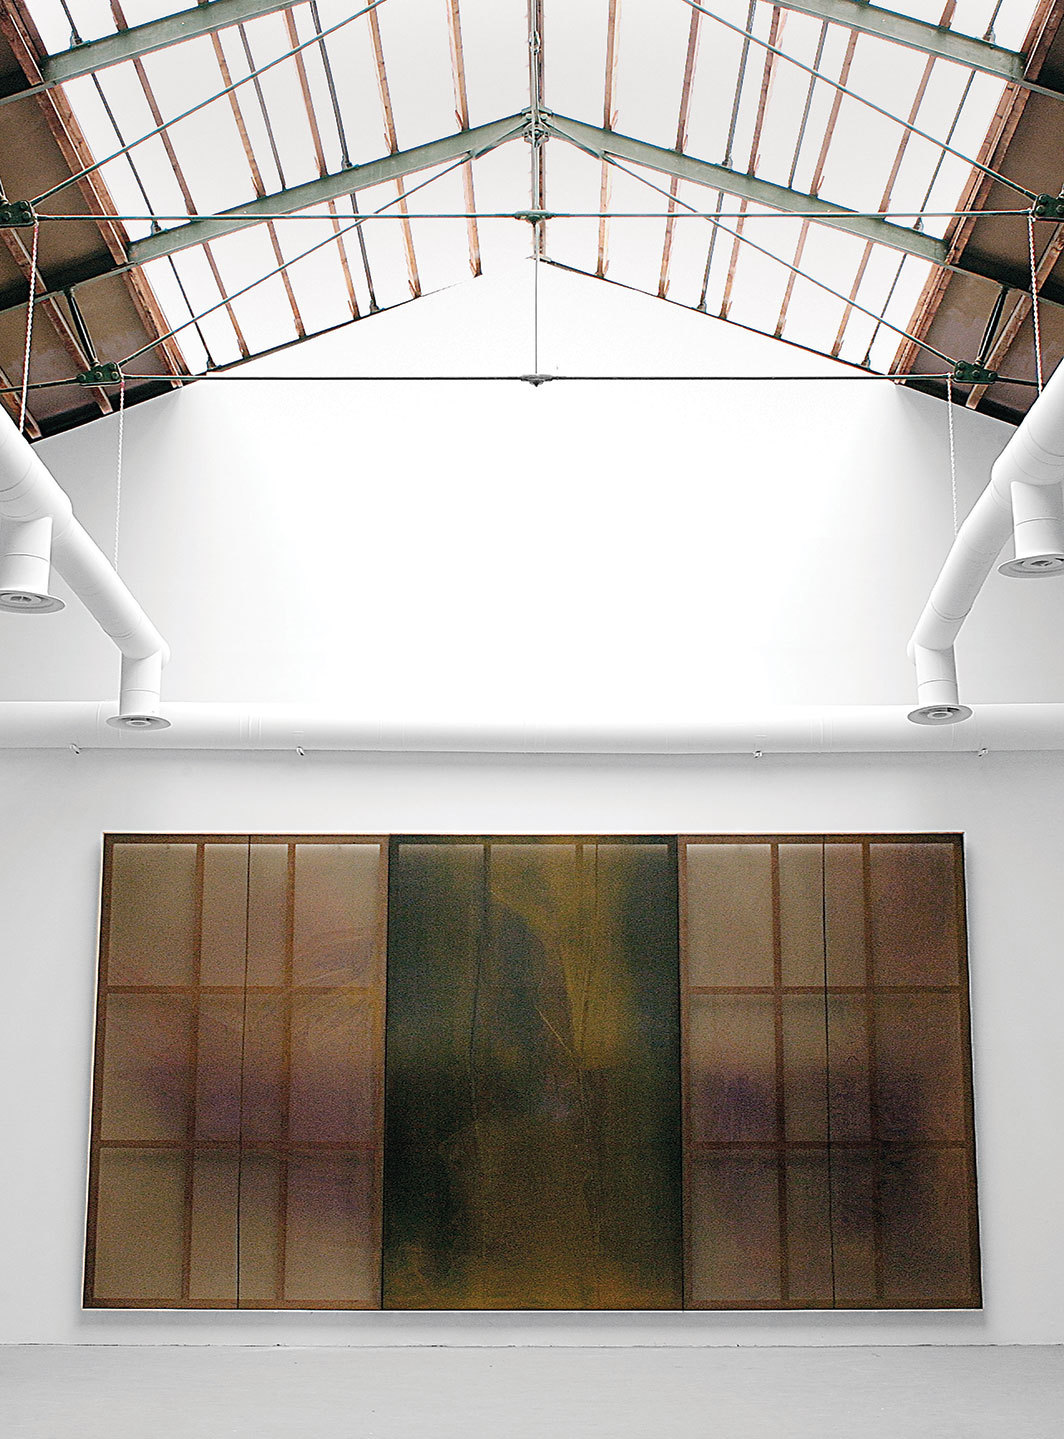 Sigmar Polke, Deucalion's Flood (Axial Age), 2007, violet pigments and mixed media on fabric. Installation view, Italian Pavilion, Fifty-second Venice Biennale.